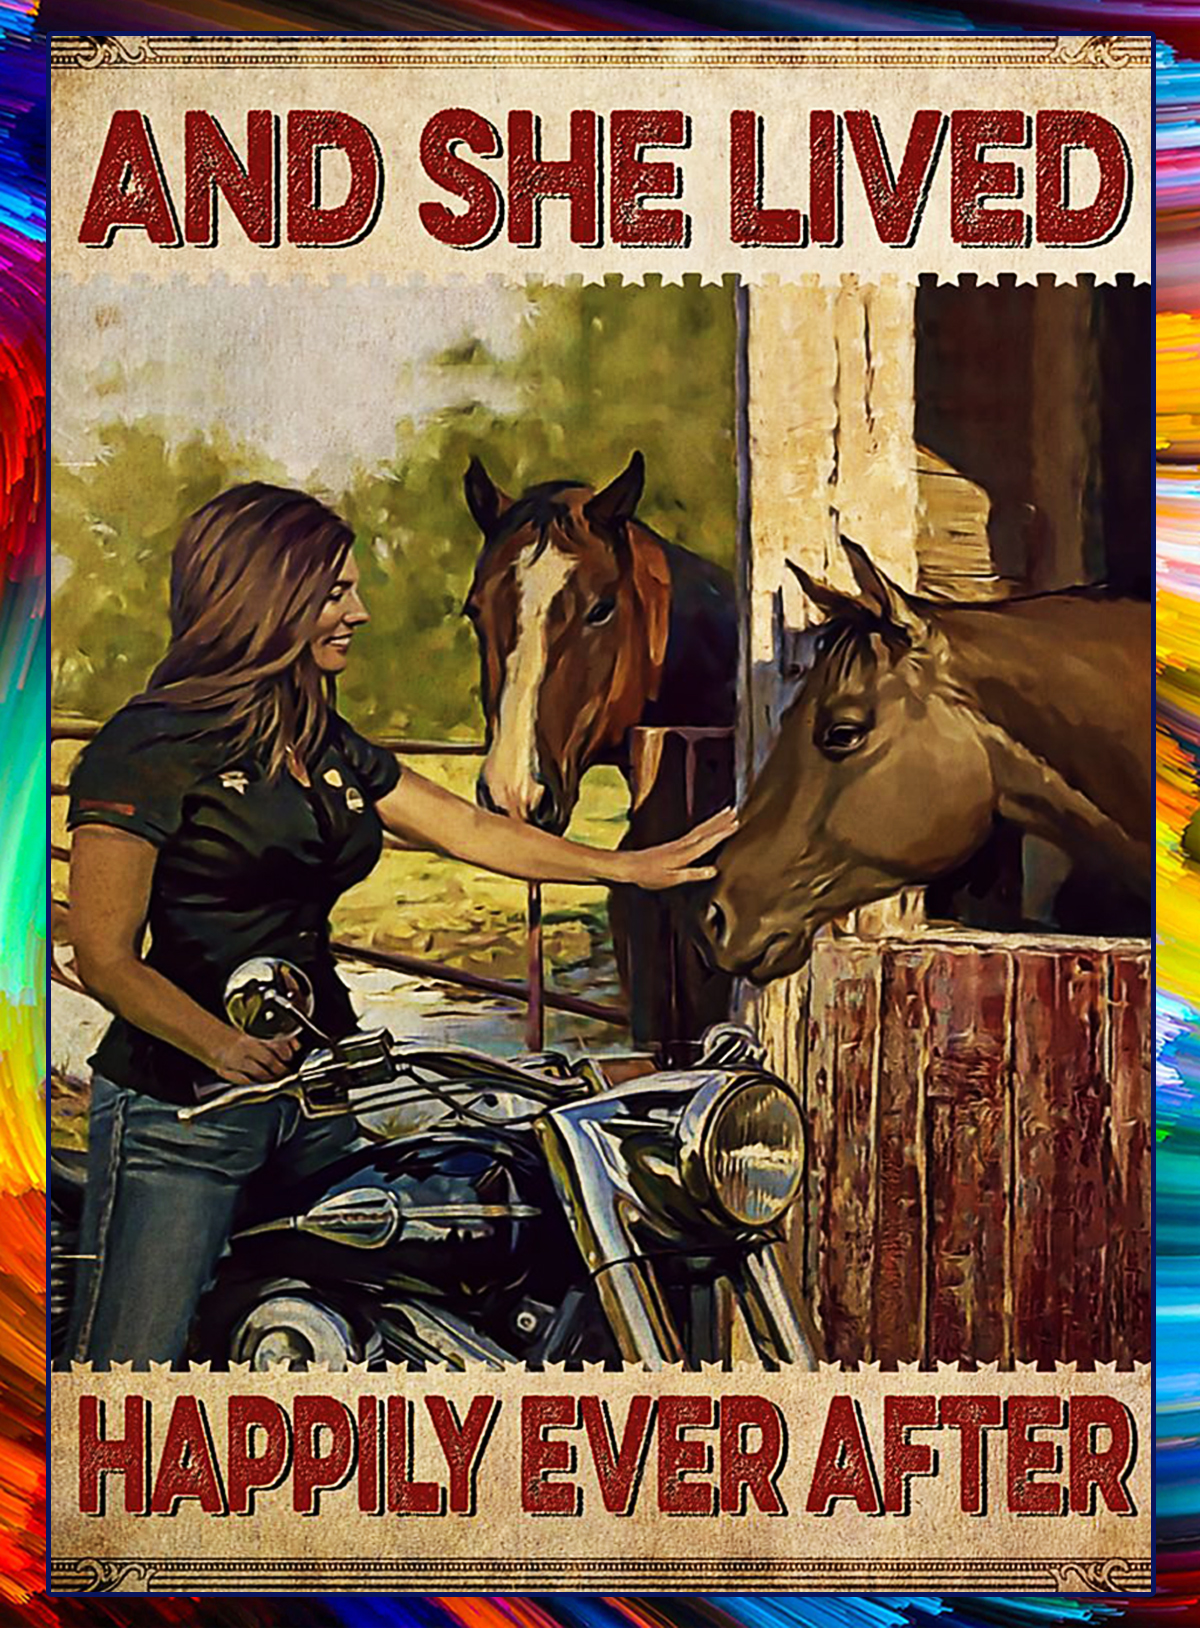 Biker horse and she lived happily ever after poster - A4